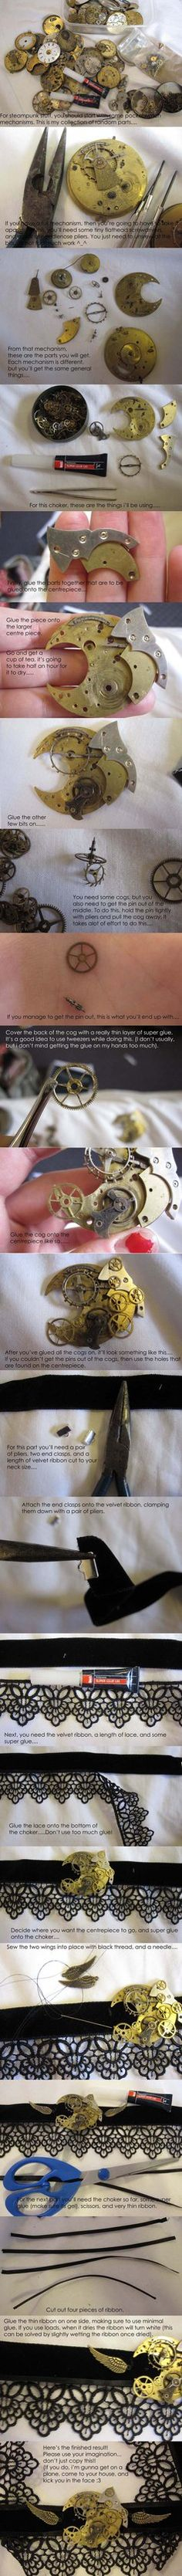 Steampunk jewellery tutorial by ~Gothic-Enchantress on deviantART